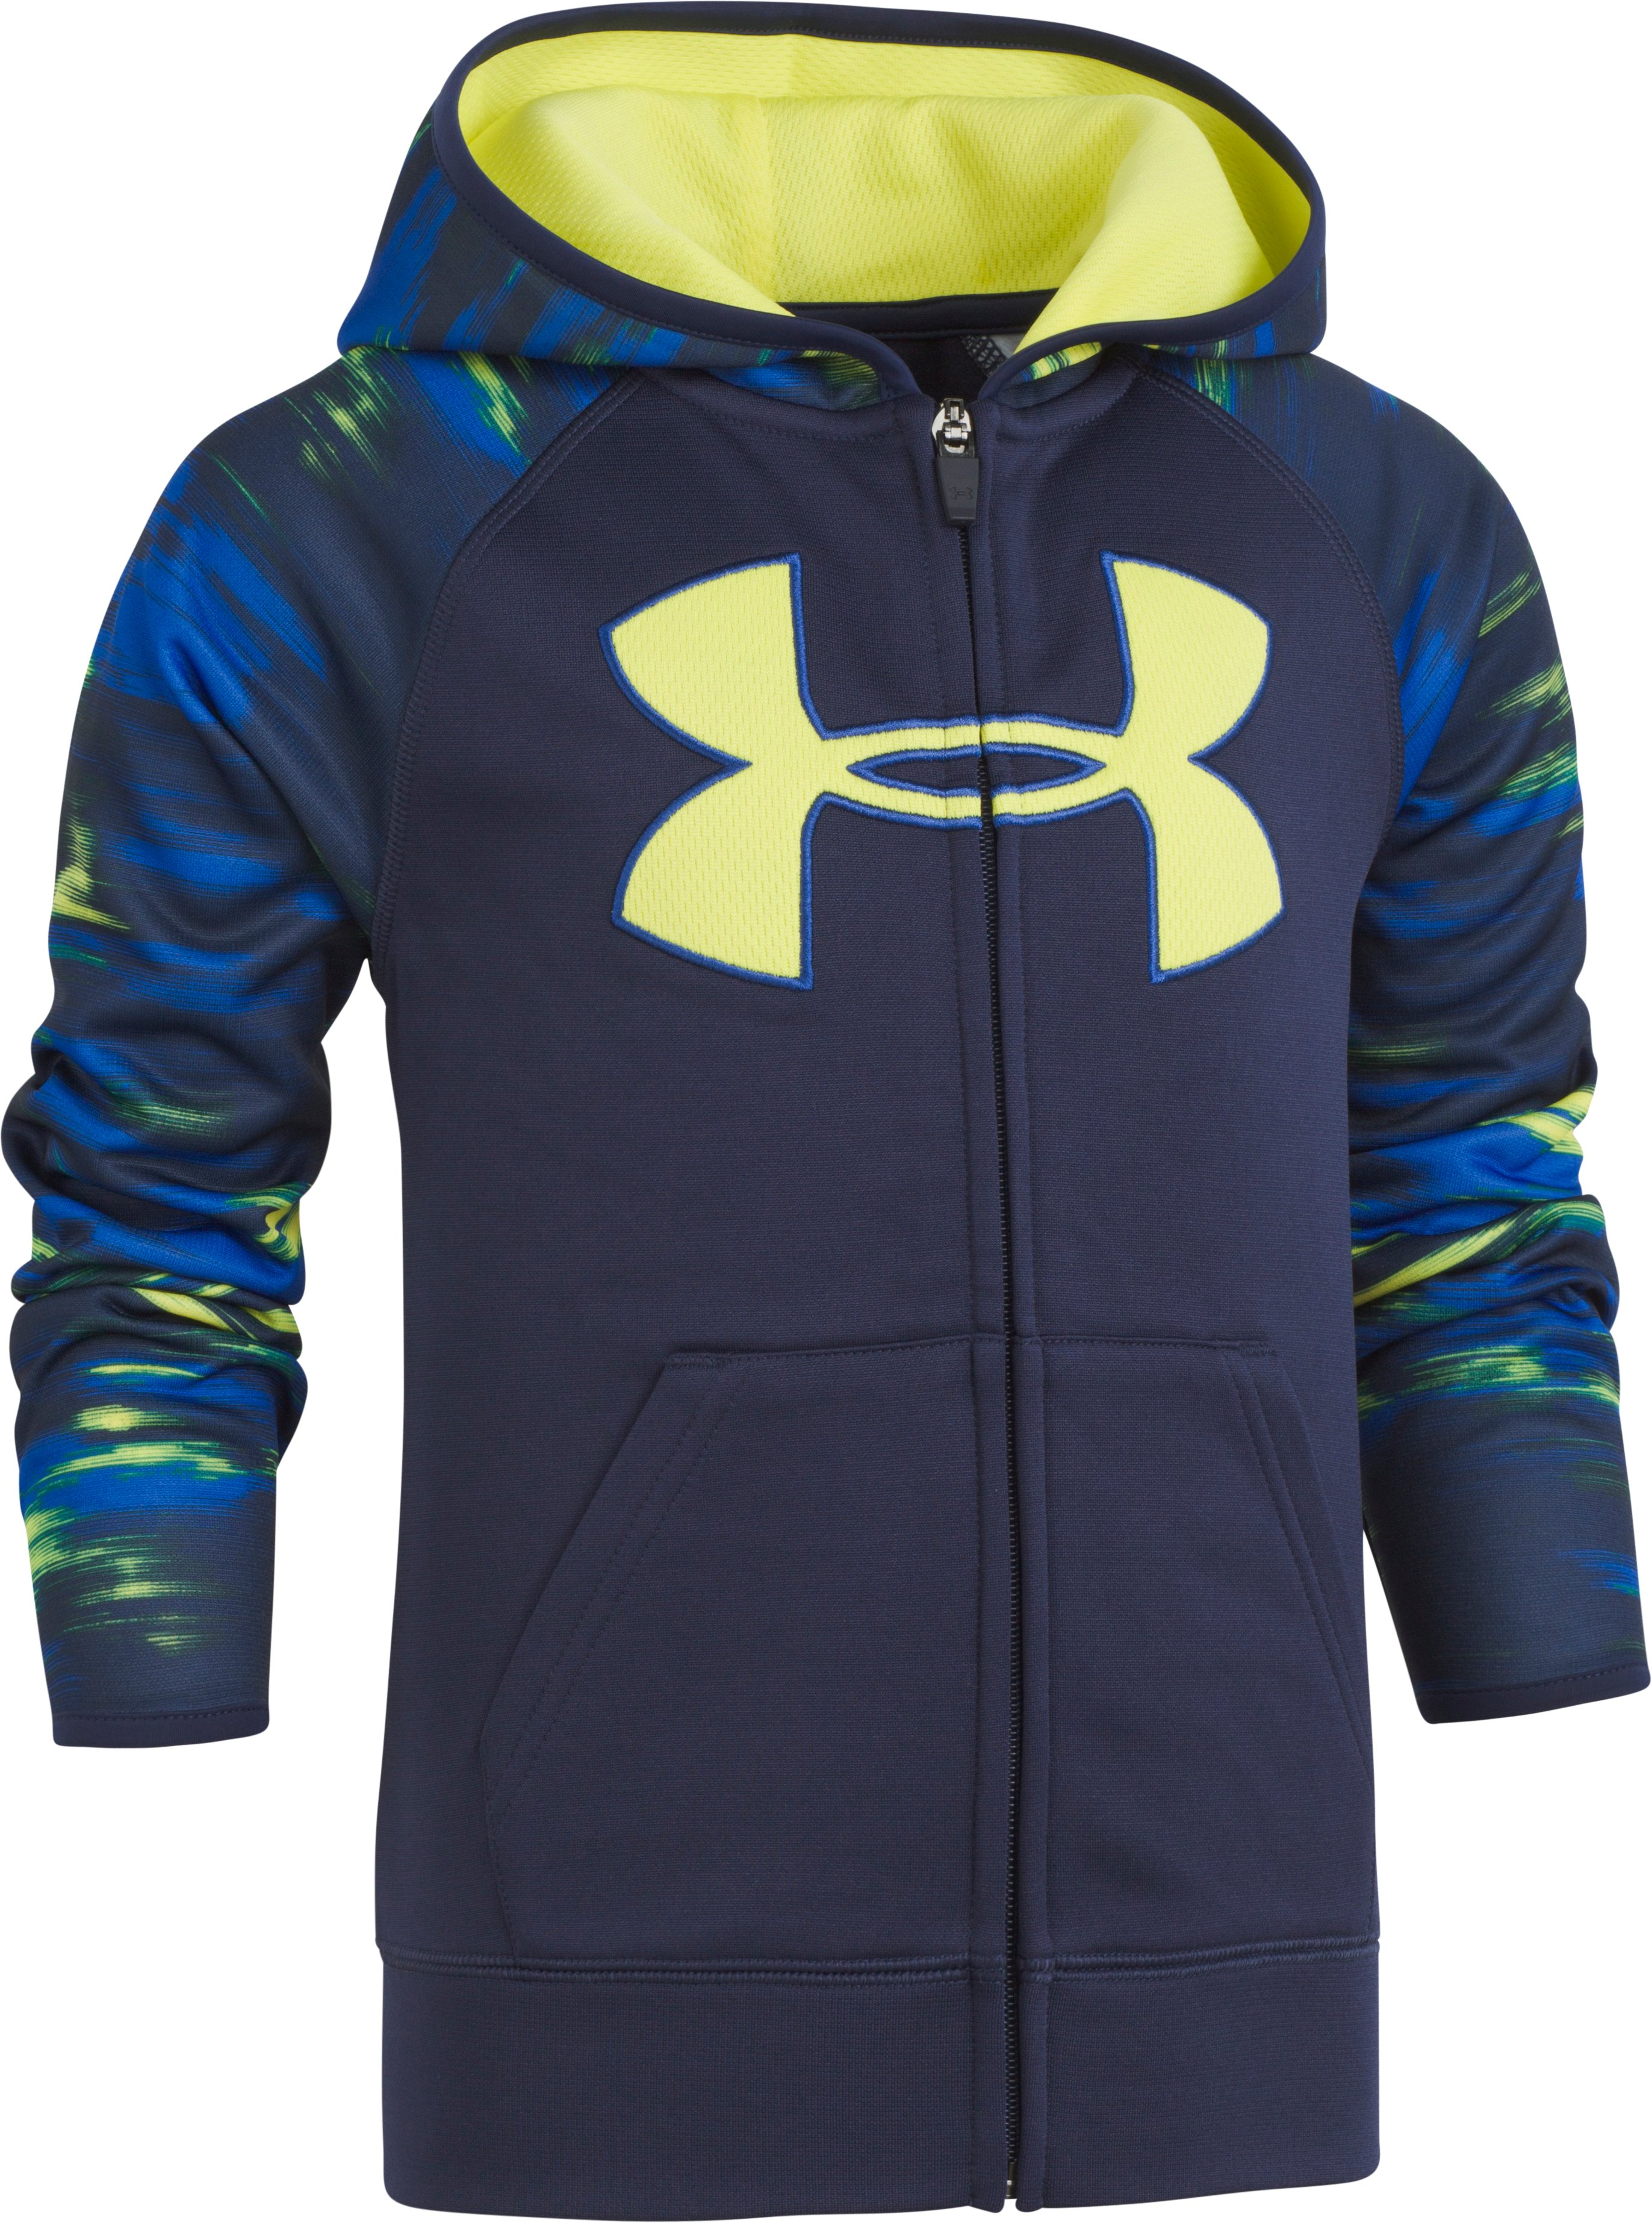 Boys' Toddler UA Accelerate Big Logo Hoodie, Midnight Navy, zoomed